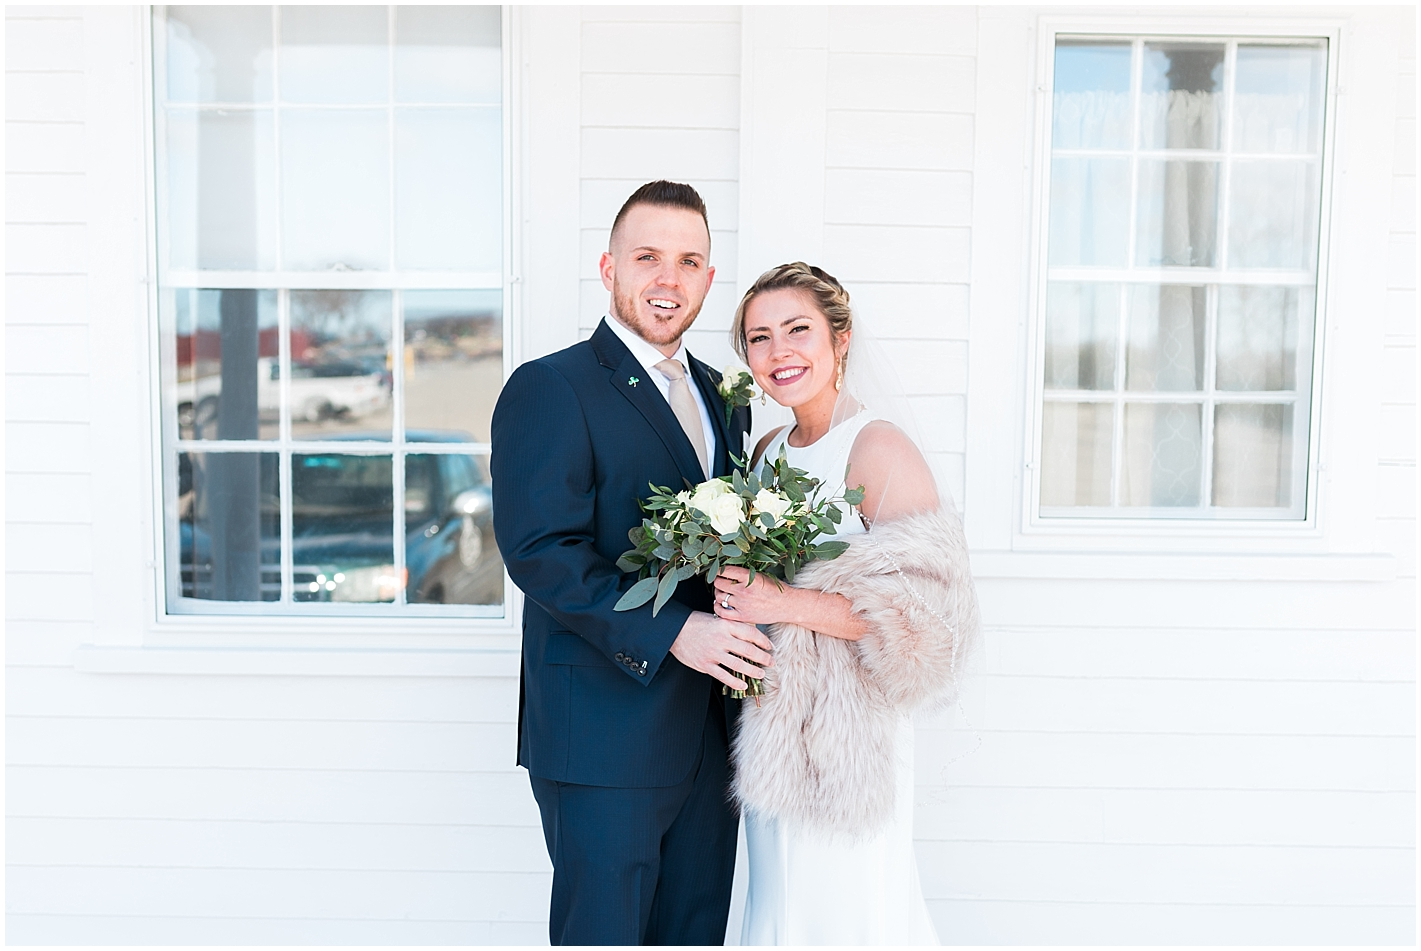 Classic Bride and Groom Photos by Alyssa Parker Photography